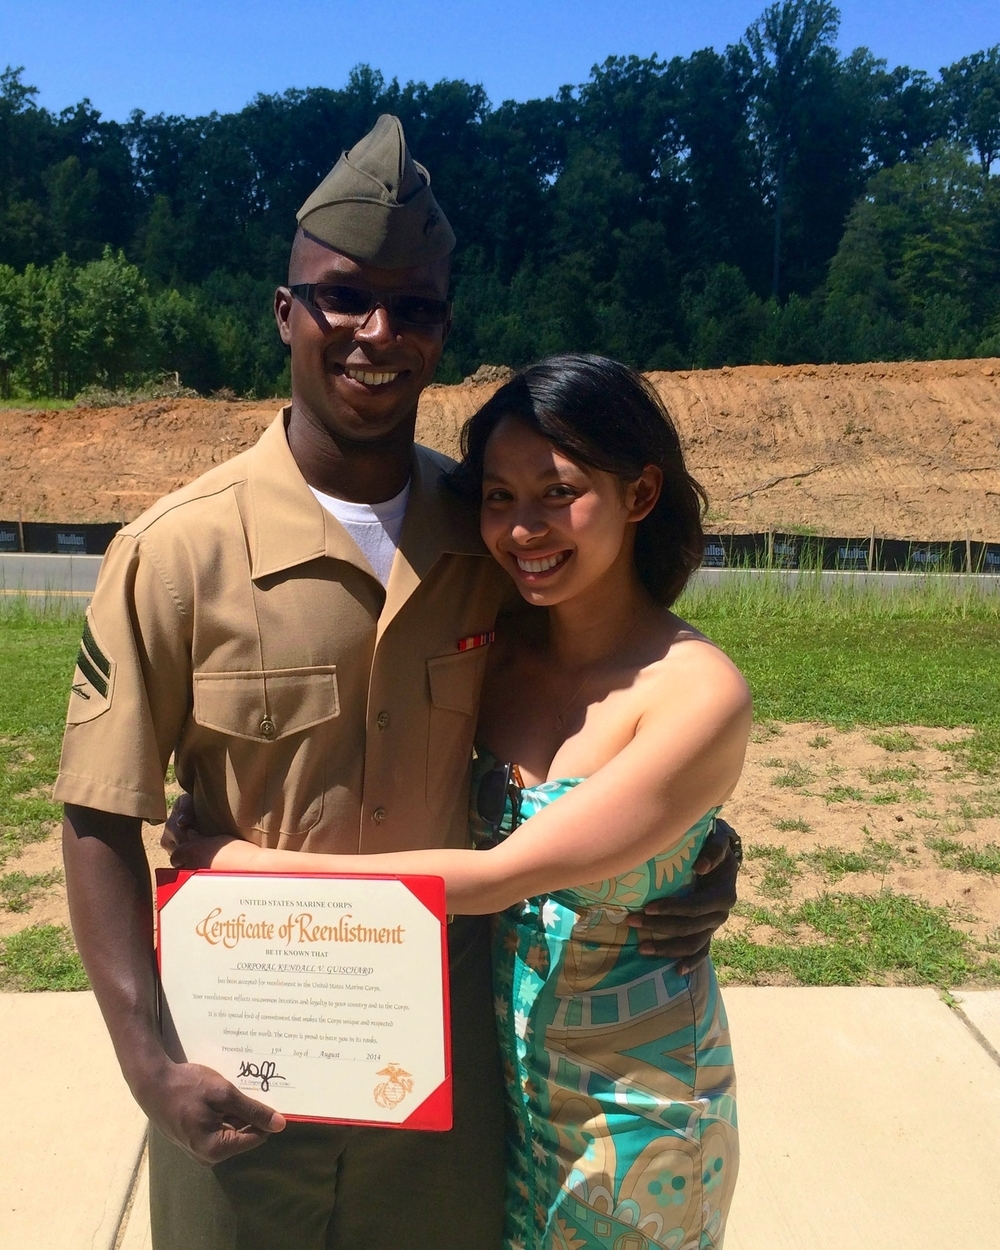 Kendall's reenlistment